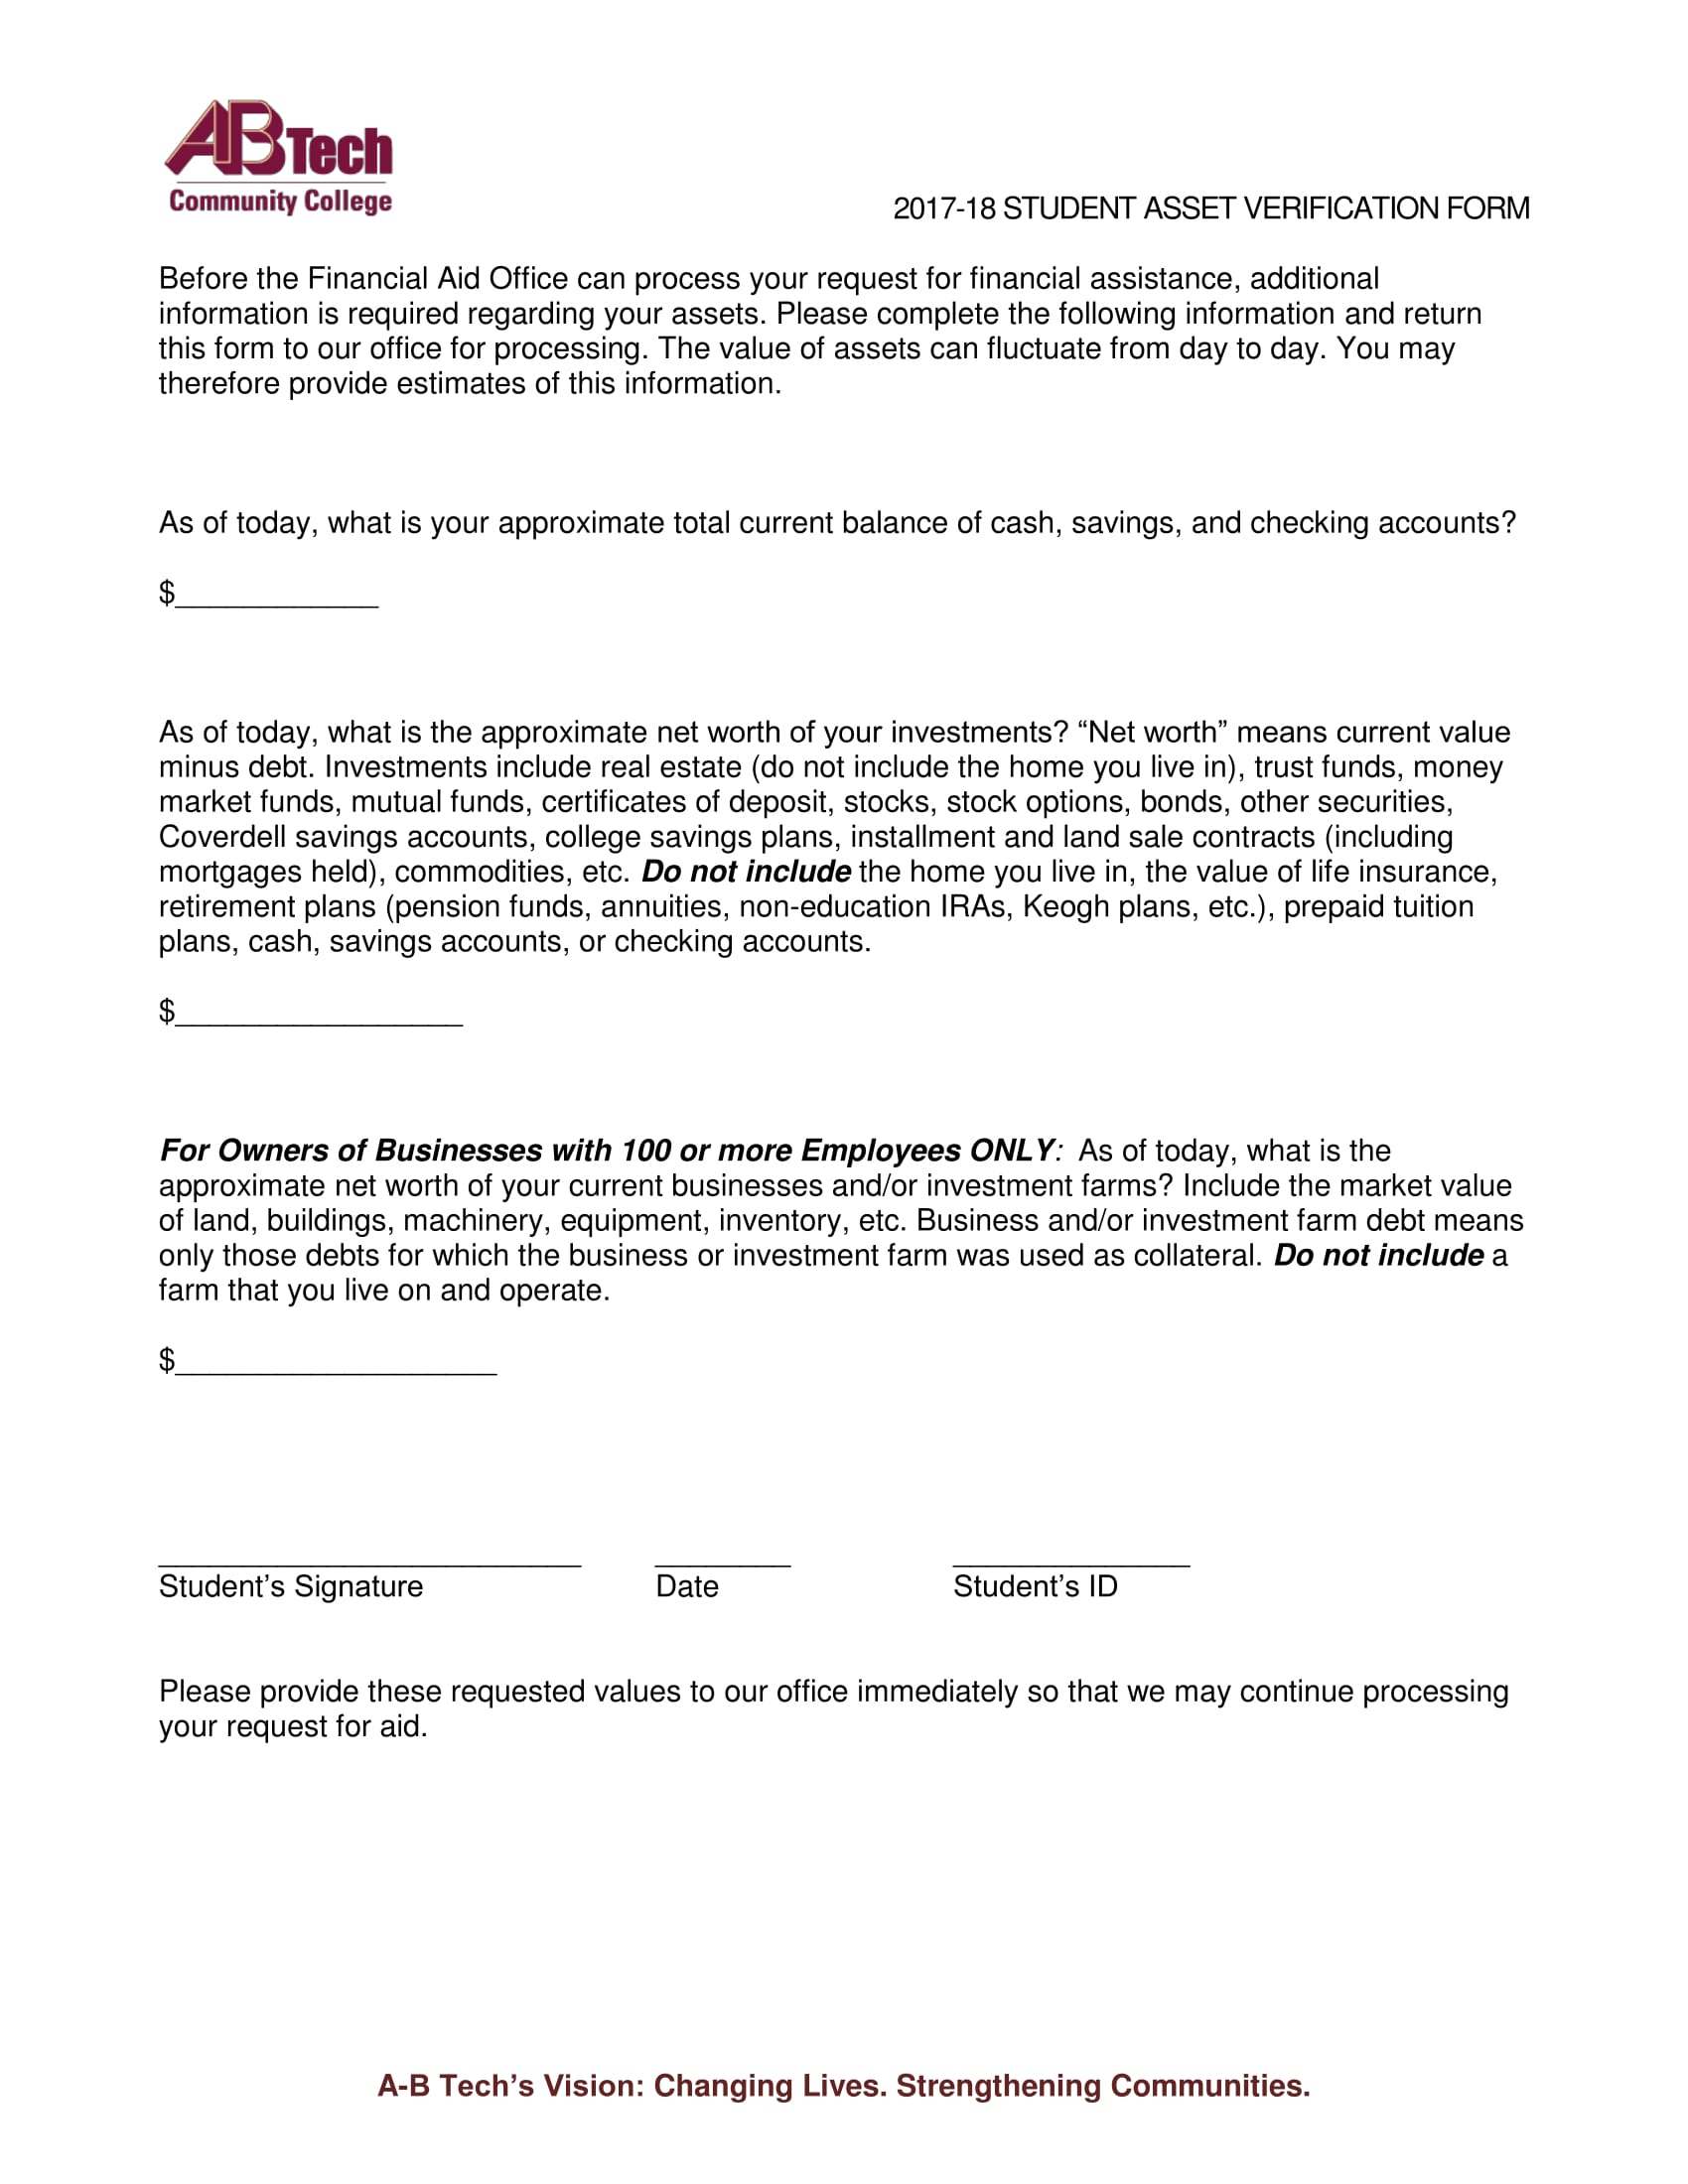 tech student asset verification form 2